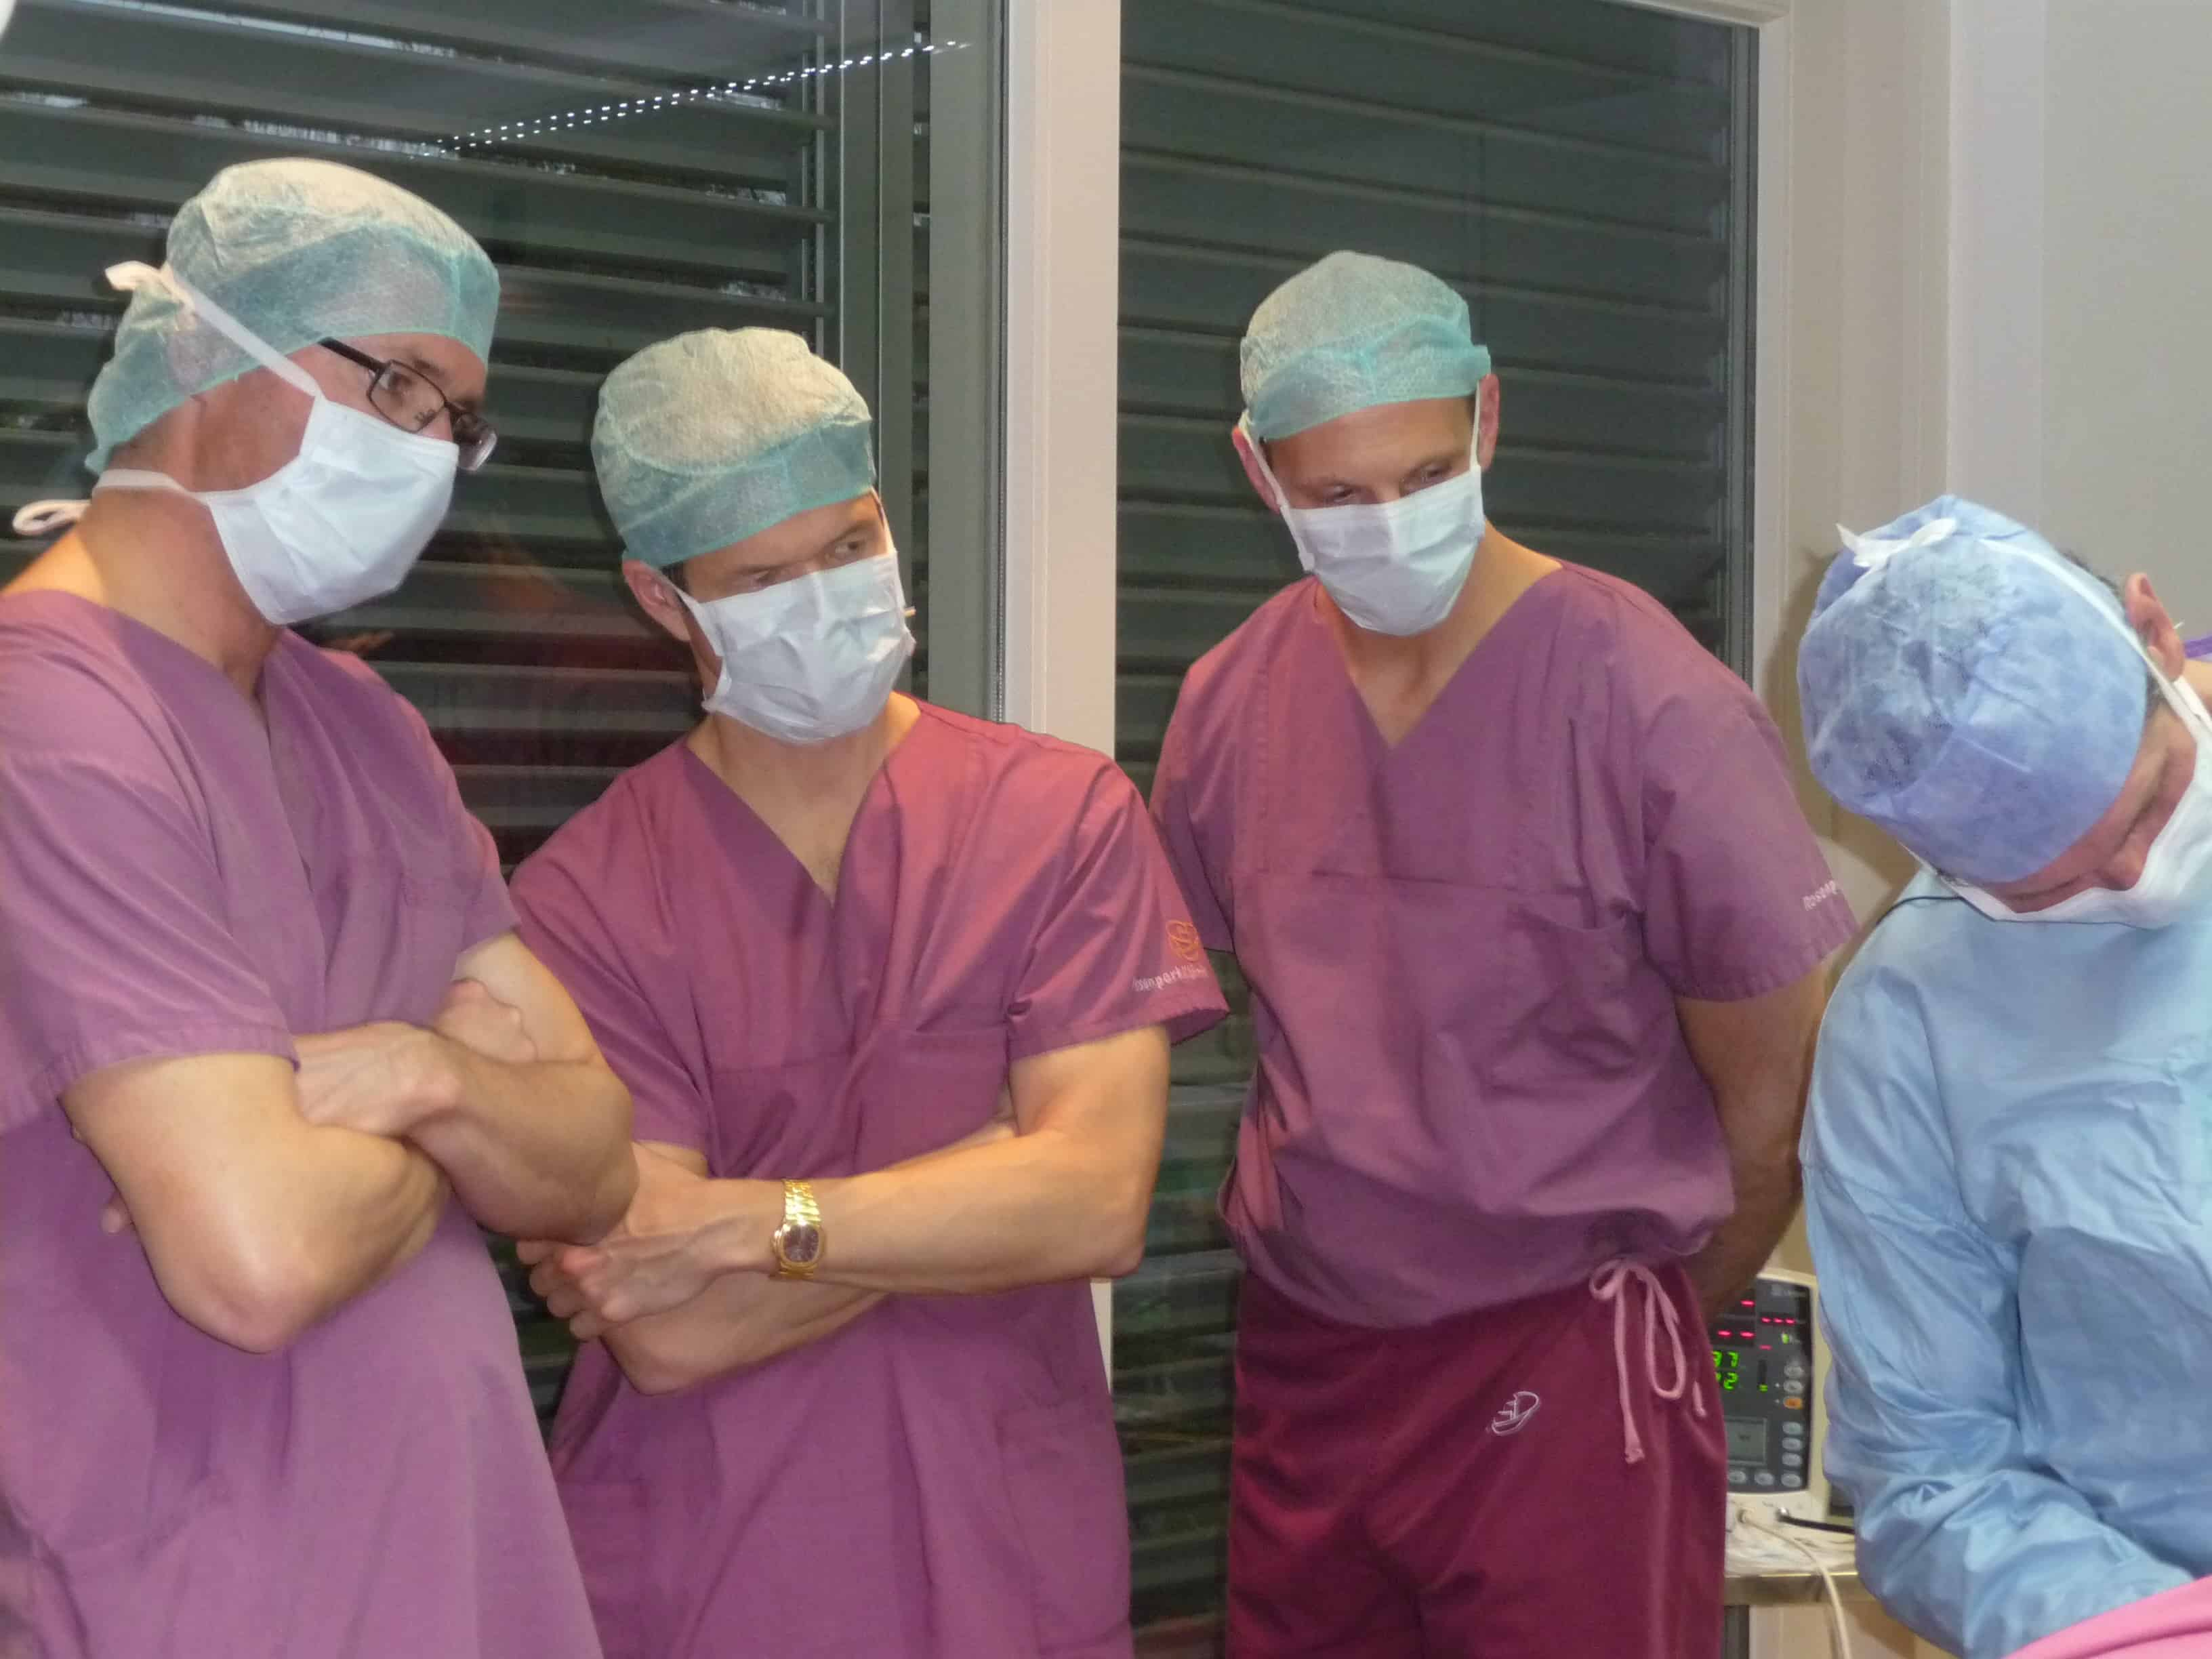 Dr. Stefan Rapprich, Dr. Mark Smith, Dr. Joe Dayan, observing surgery with Dr. Gerhard Sattler in Frankfurt Germany - March 2014